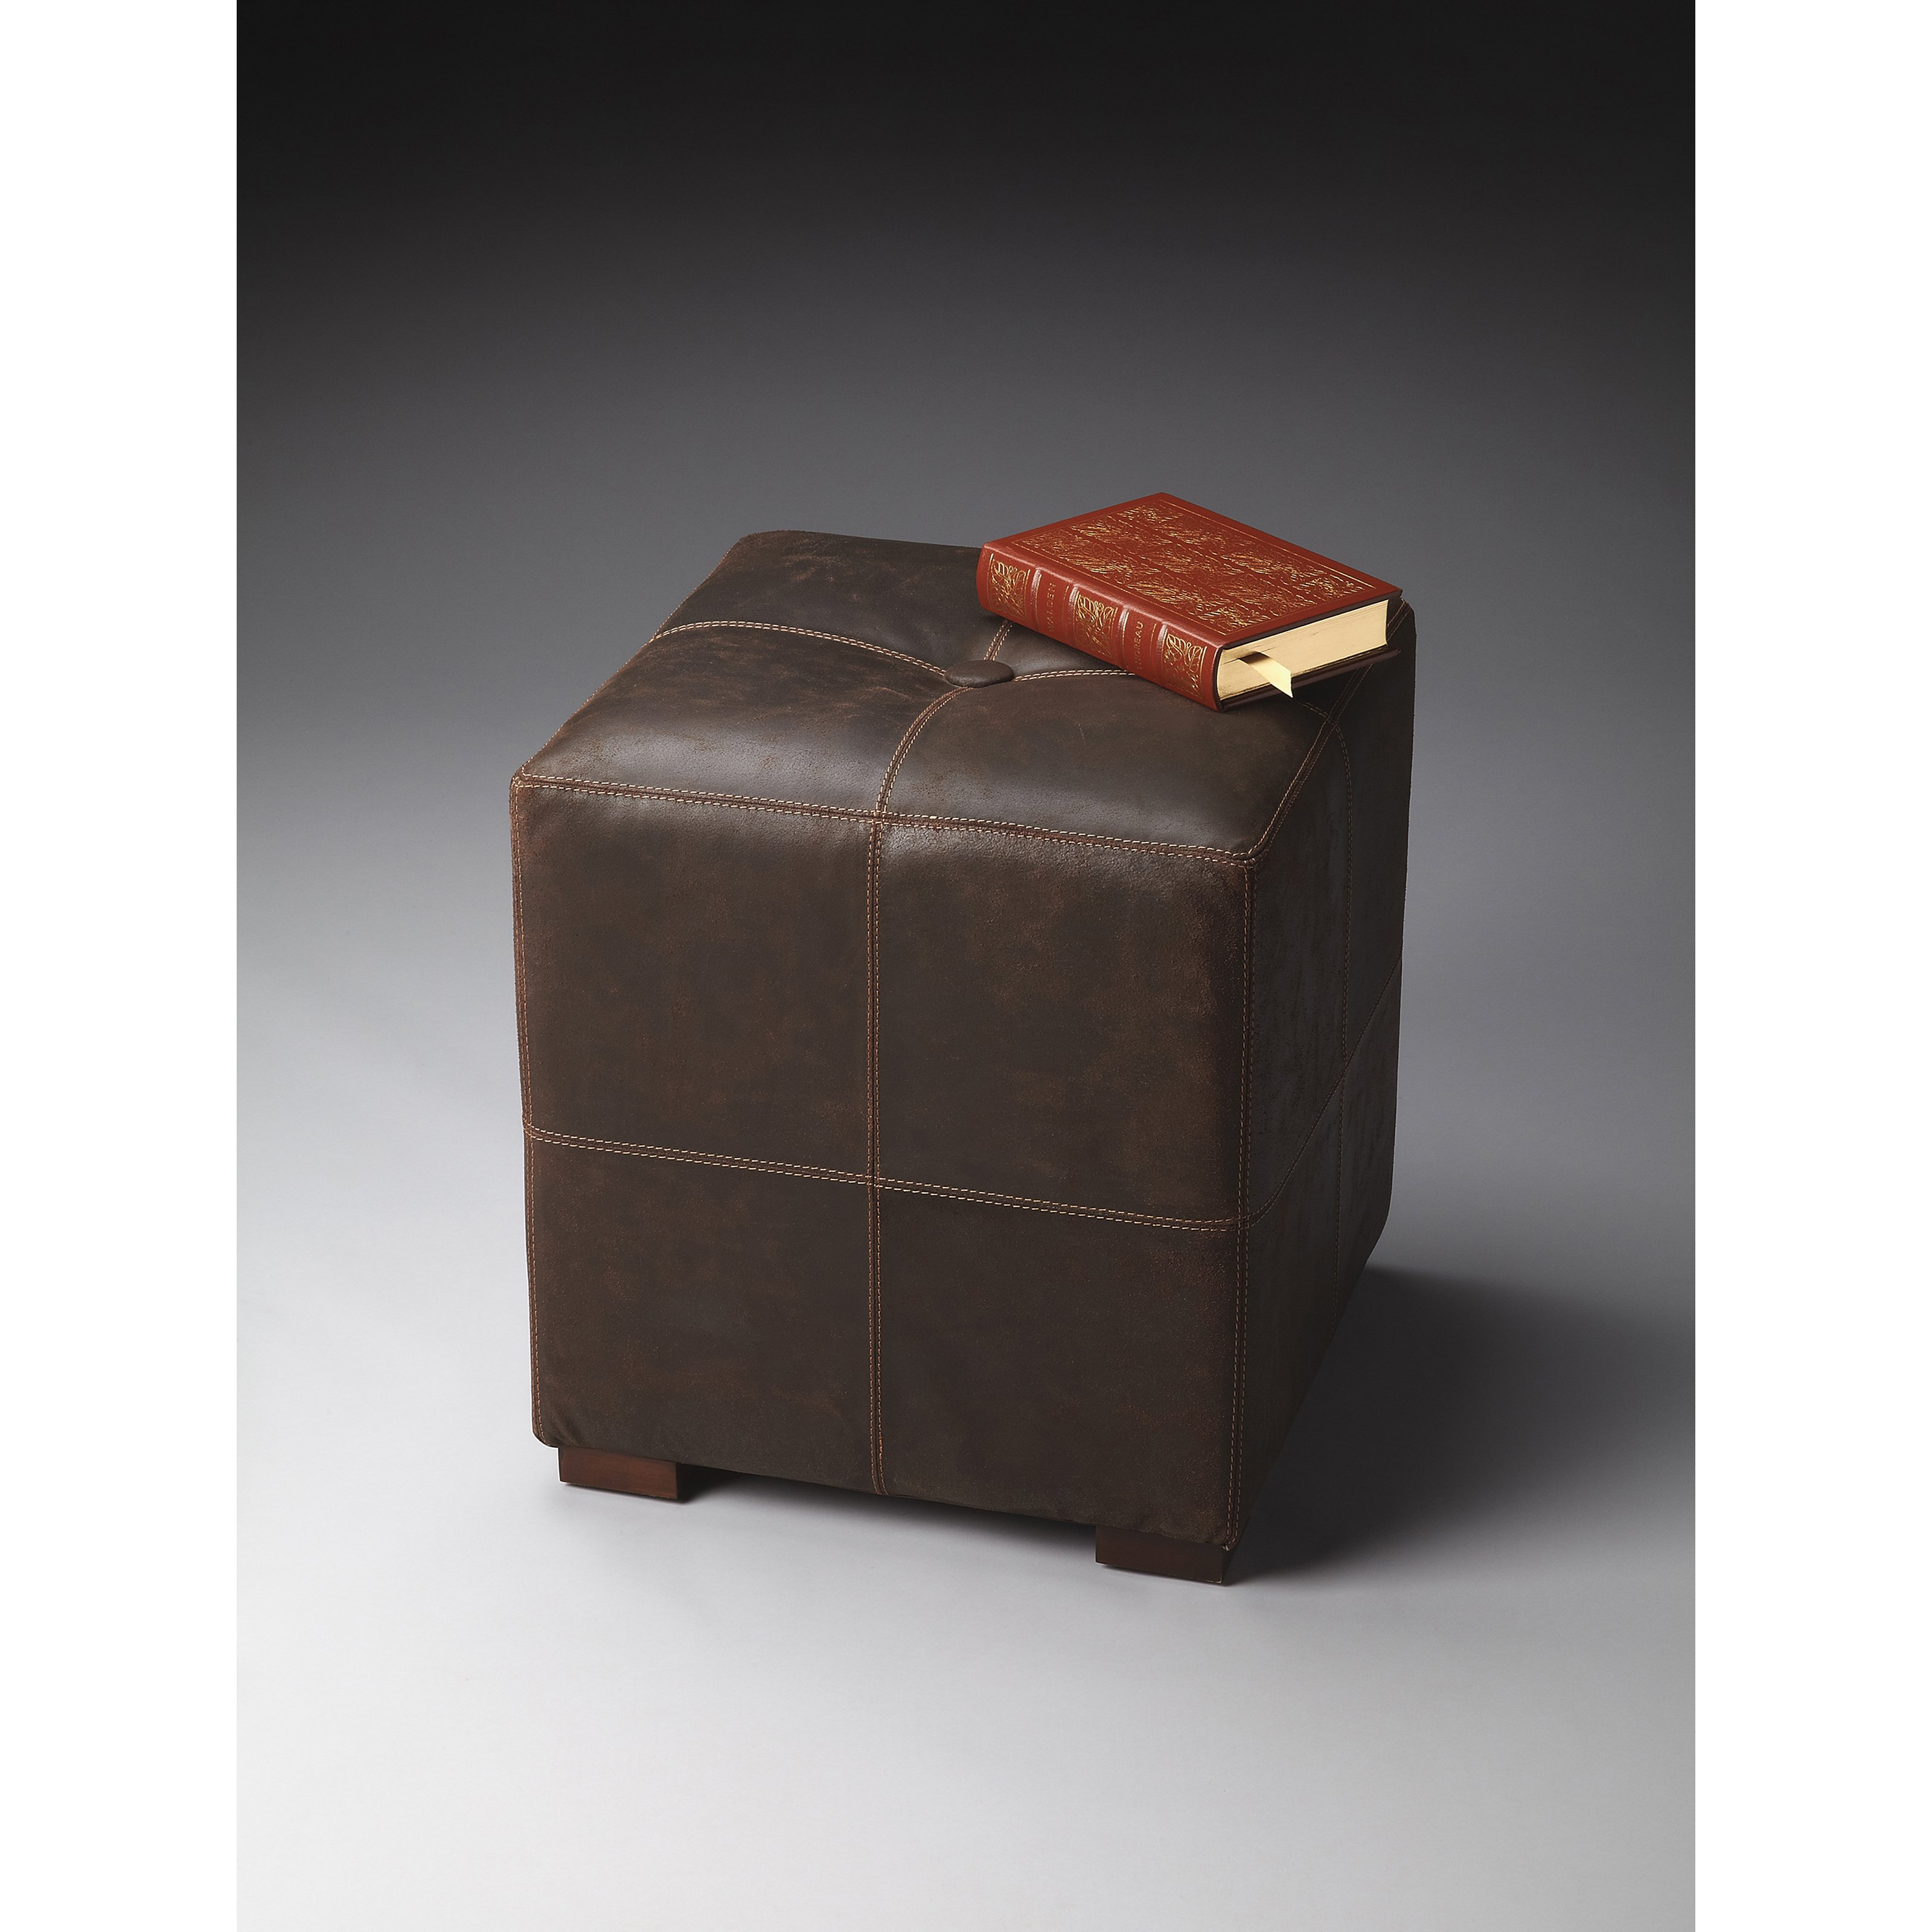 Butler Bunching Ottoman - Modern Expressions - 16.5W in.